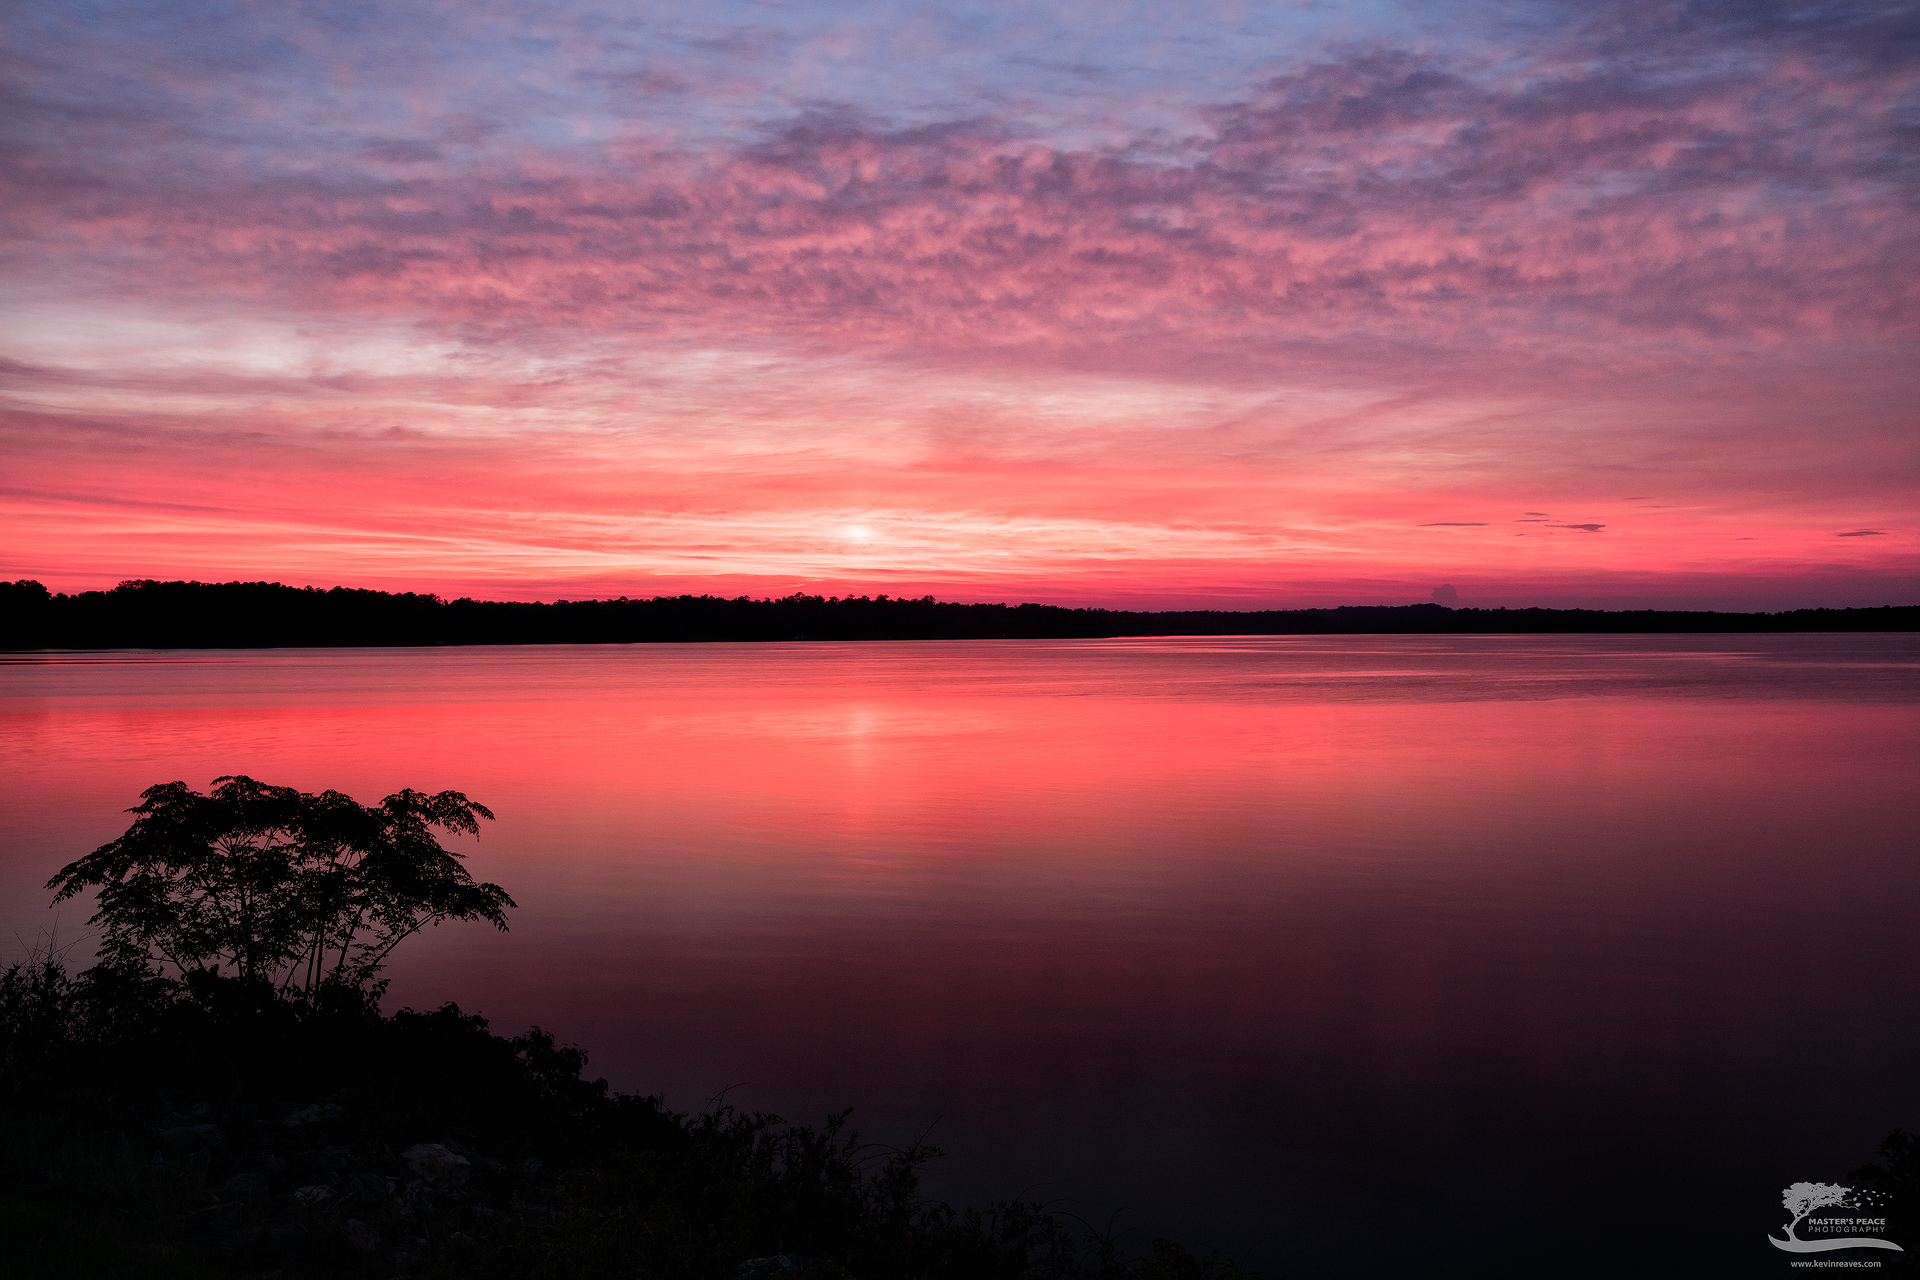 sunset, red, dusk, georgia, lake